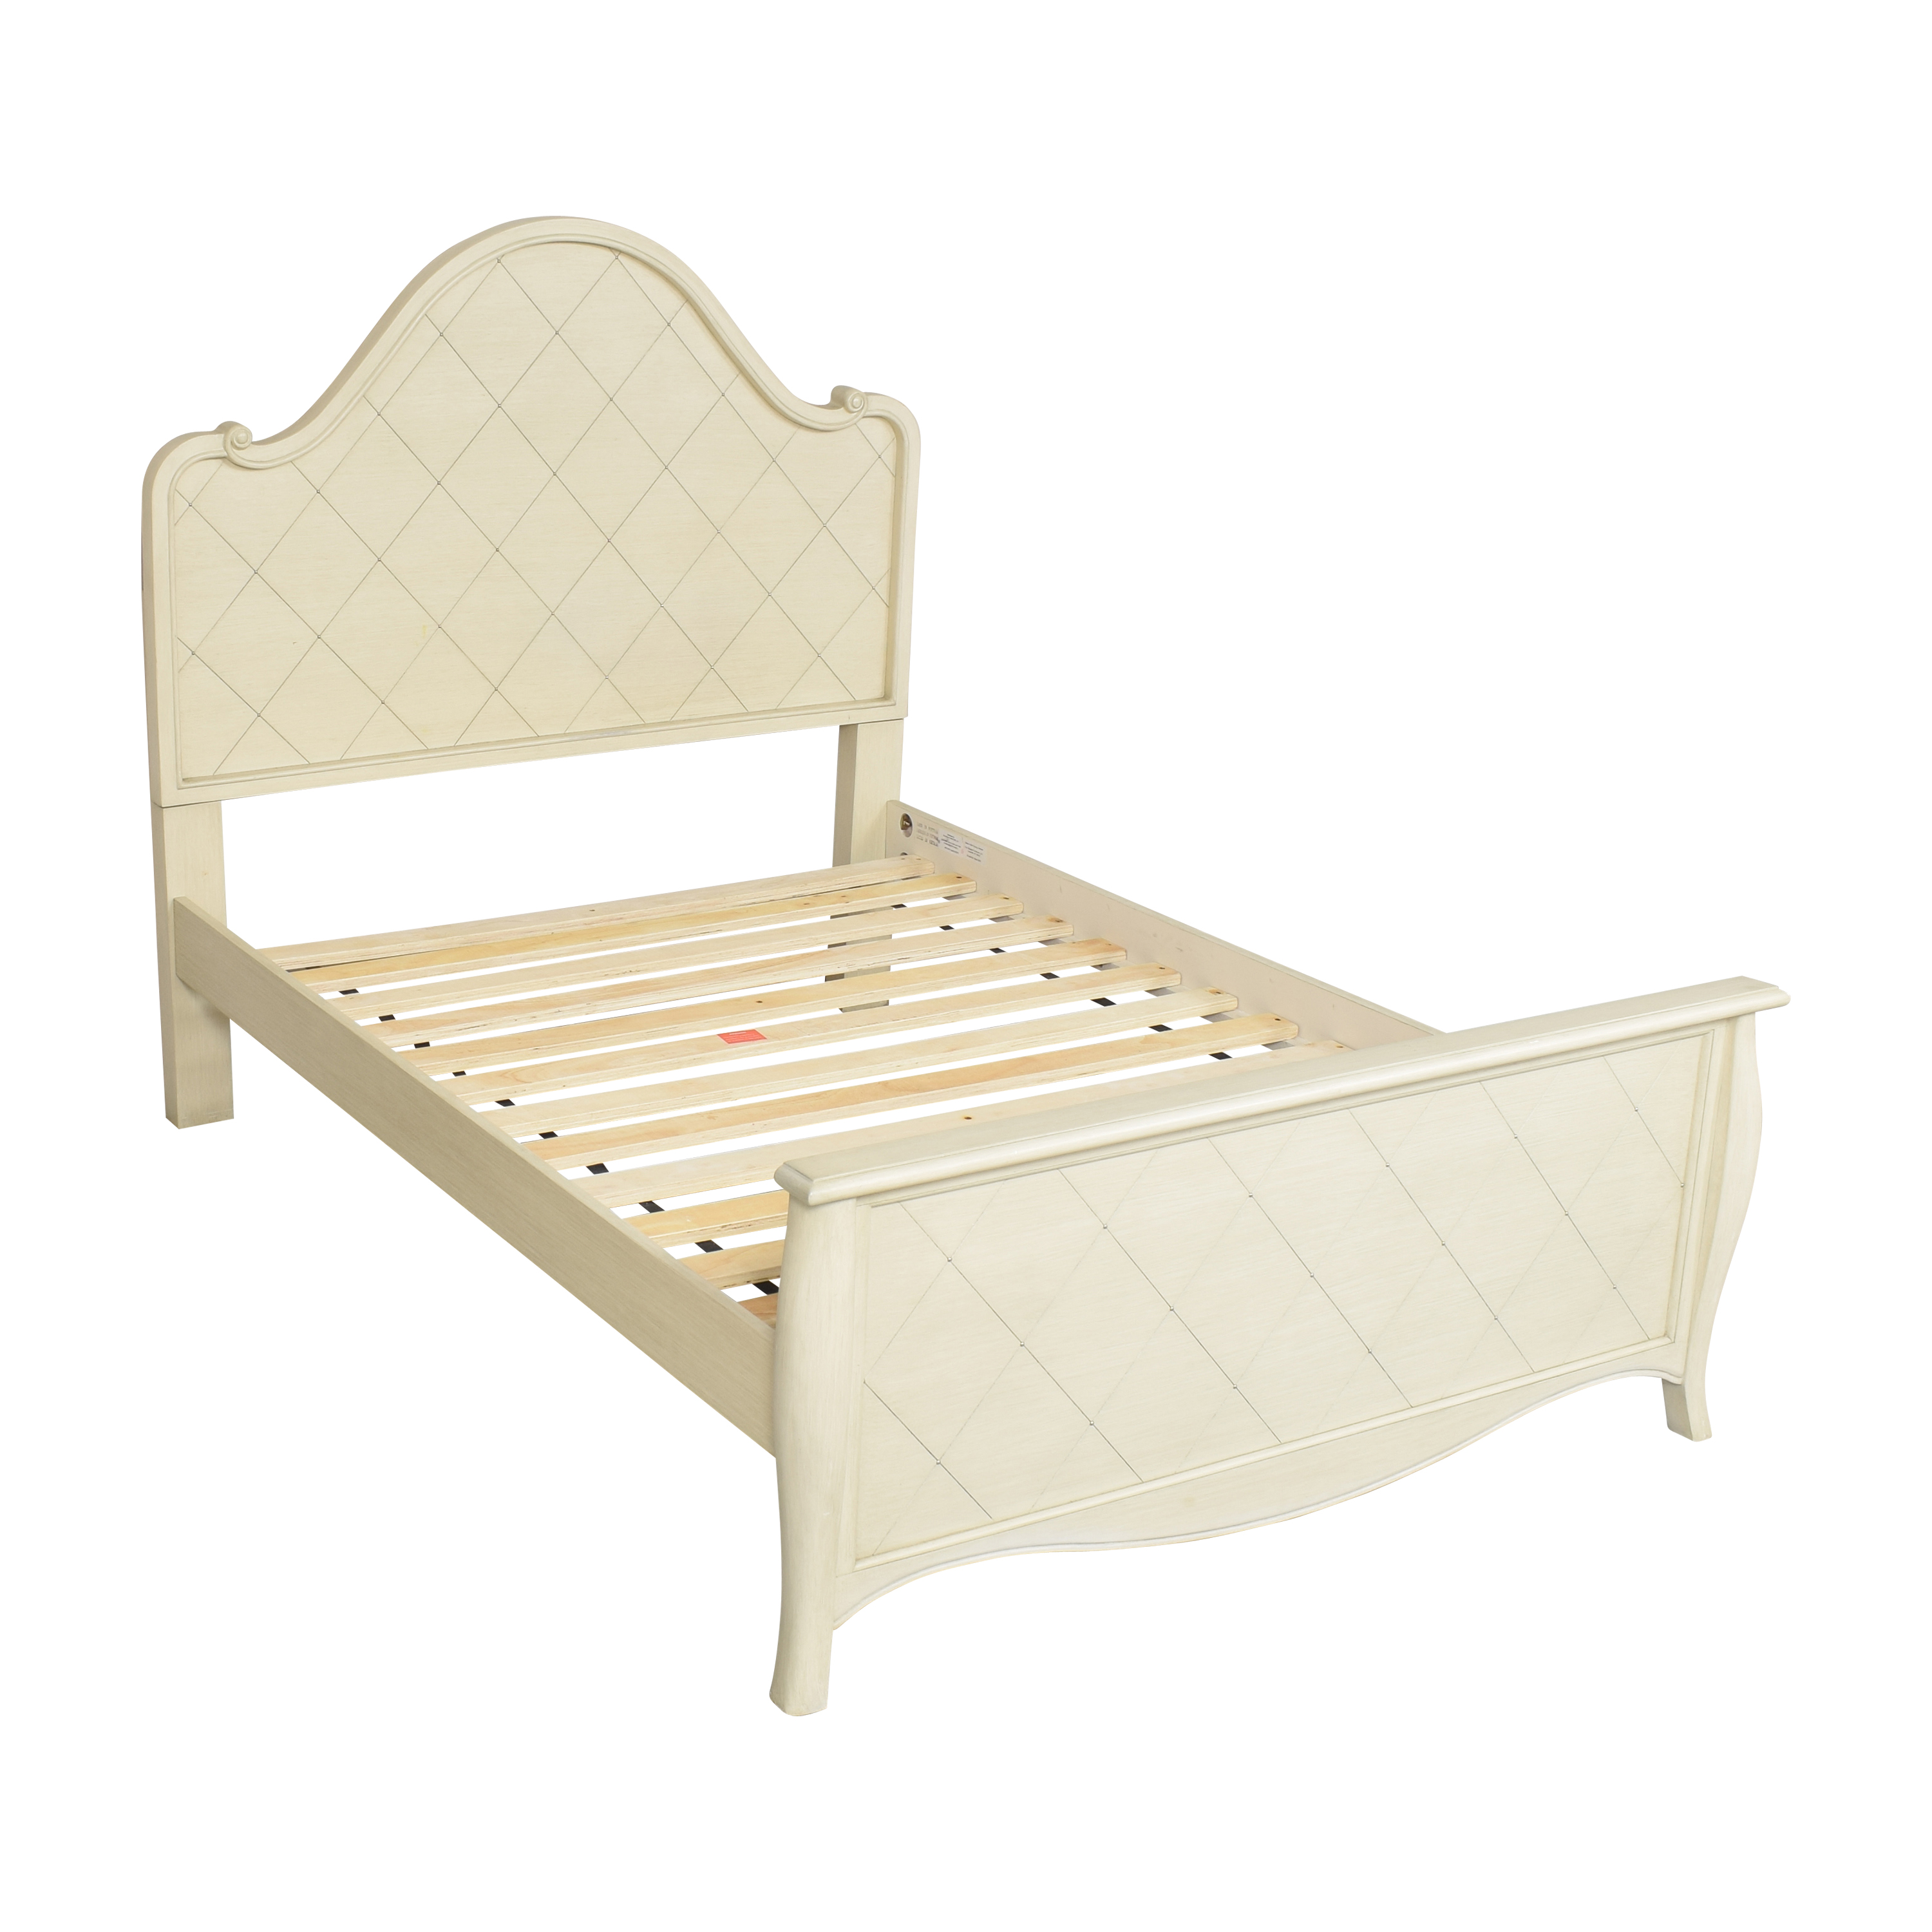 Raymour & Flanigan Raymour & Flanigan Full Panel Bed discount